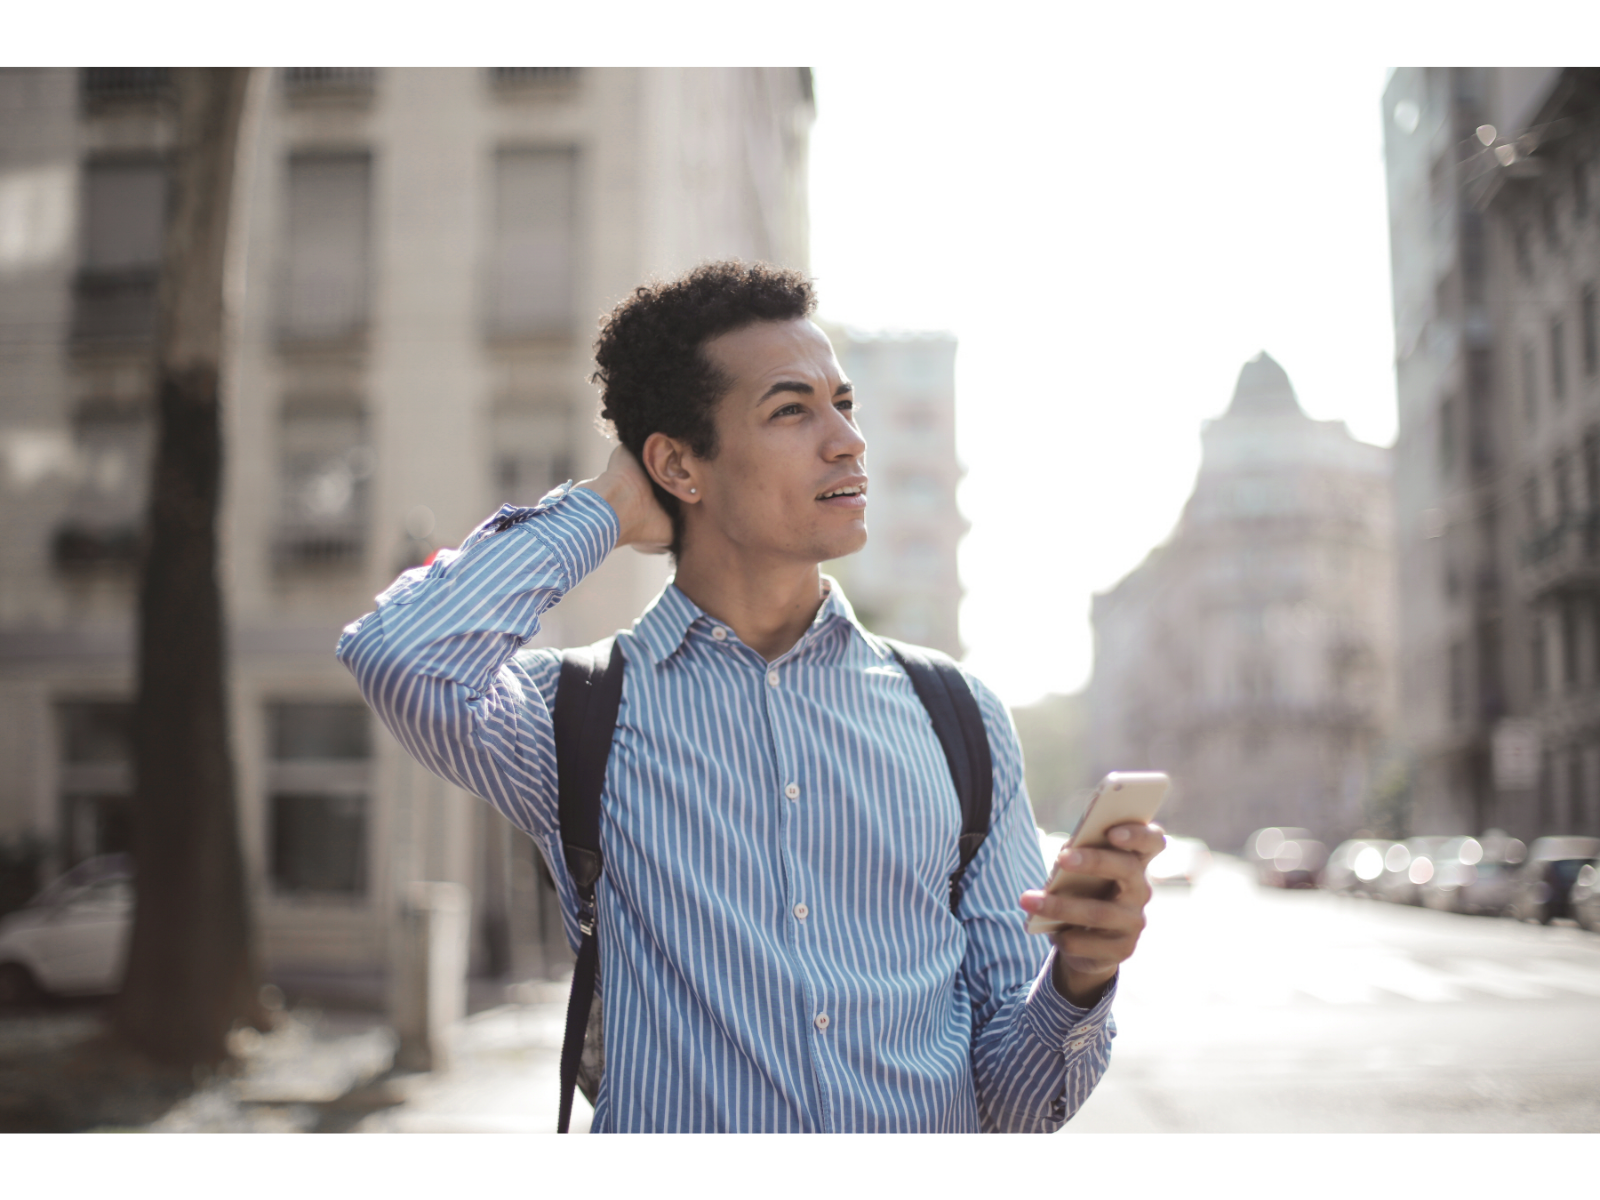 Mildly confused man stands on a city sidewalk and looks off in the distance while holding a smartphone.